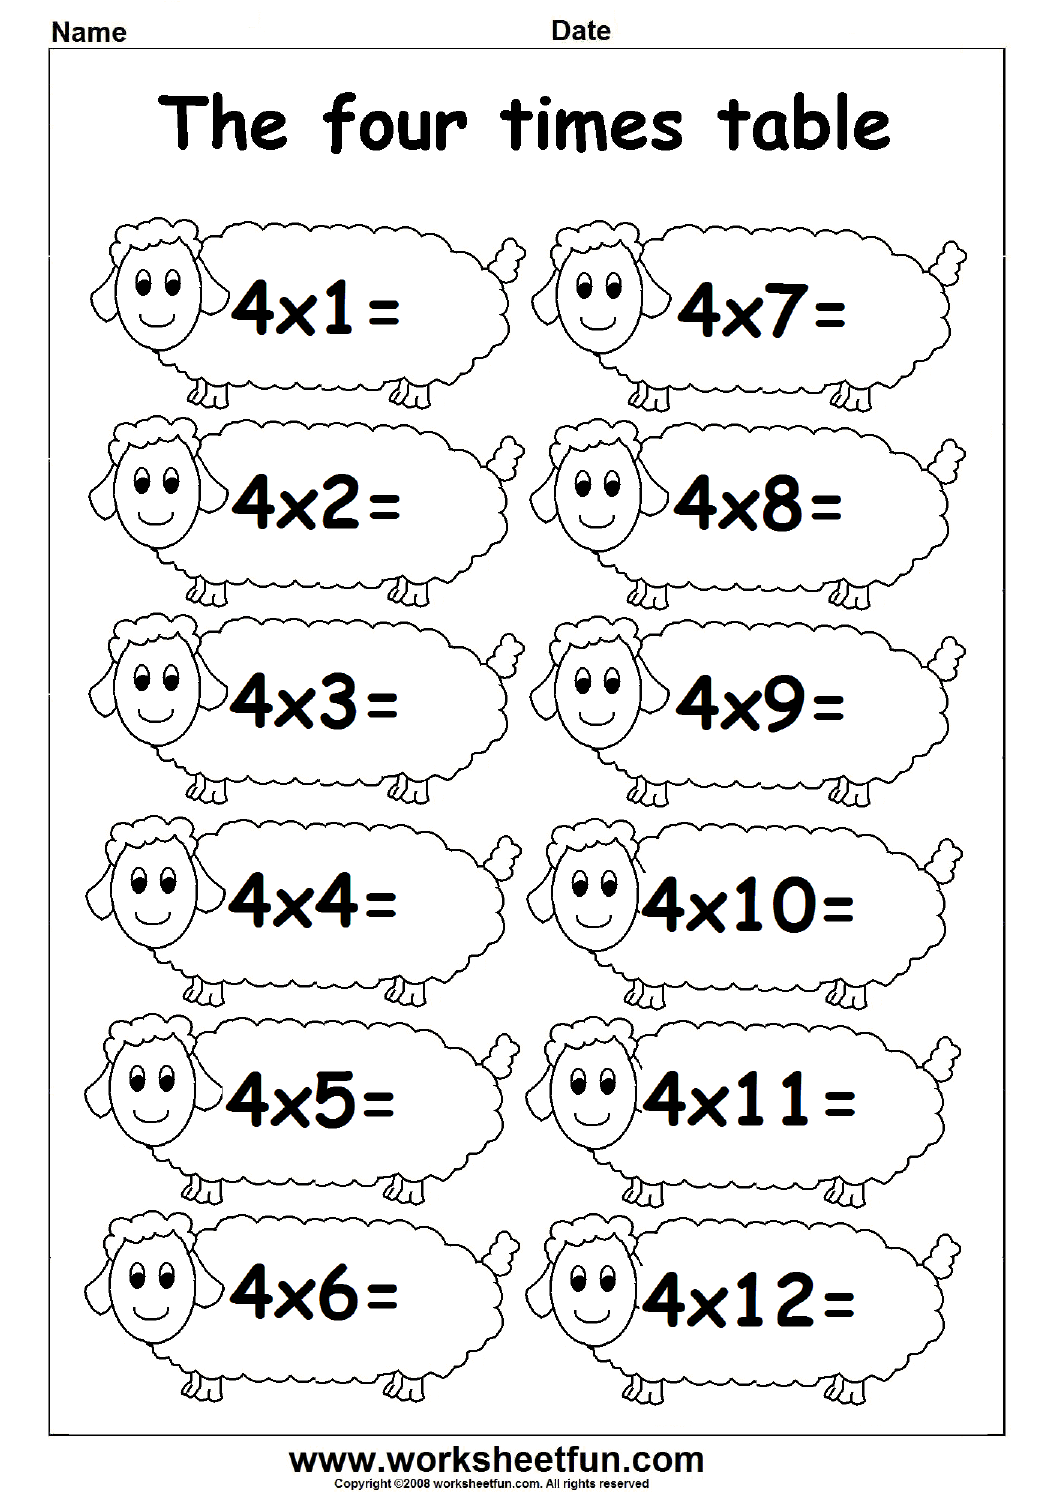 worksheet Multiplication Worksheets 3 Times Tables times table 3 free printable worksheets worksheetfun multiplication tables 2 4 three worksheets